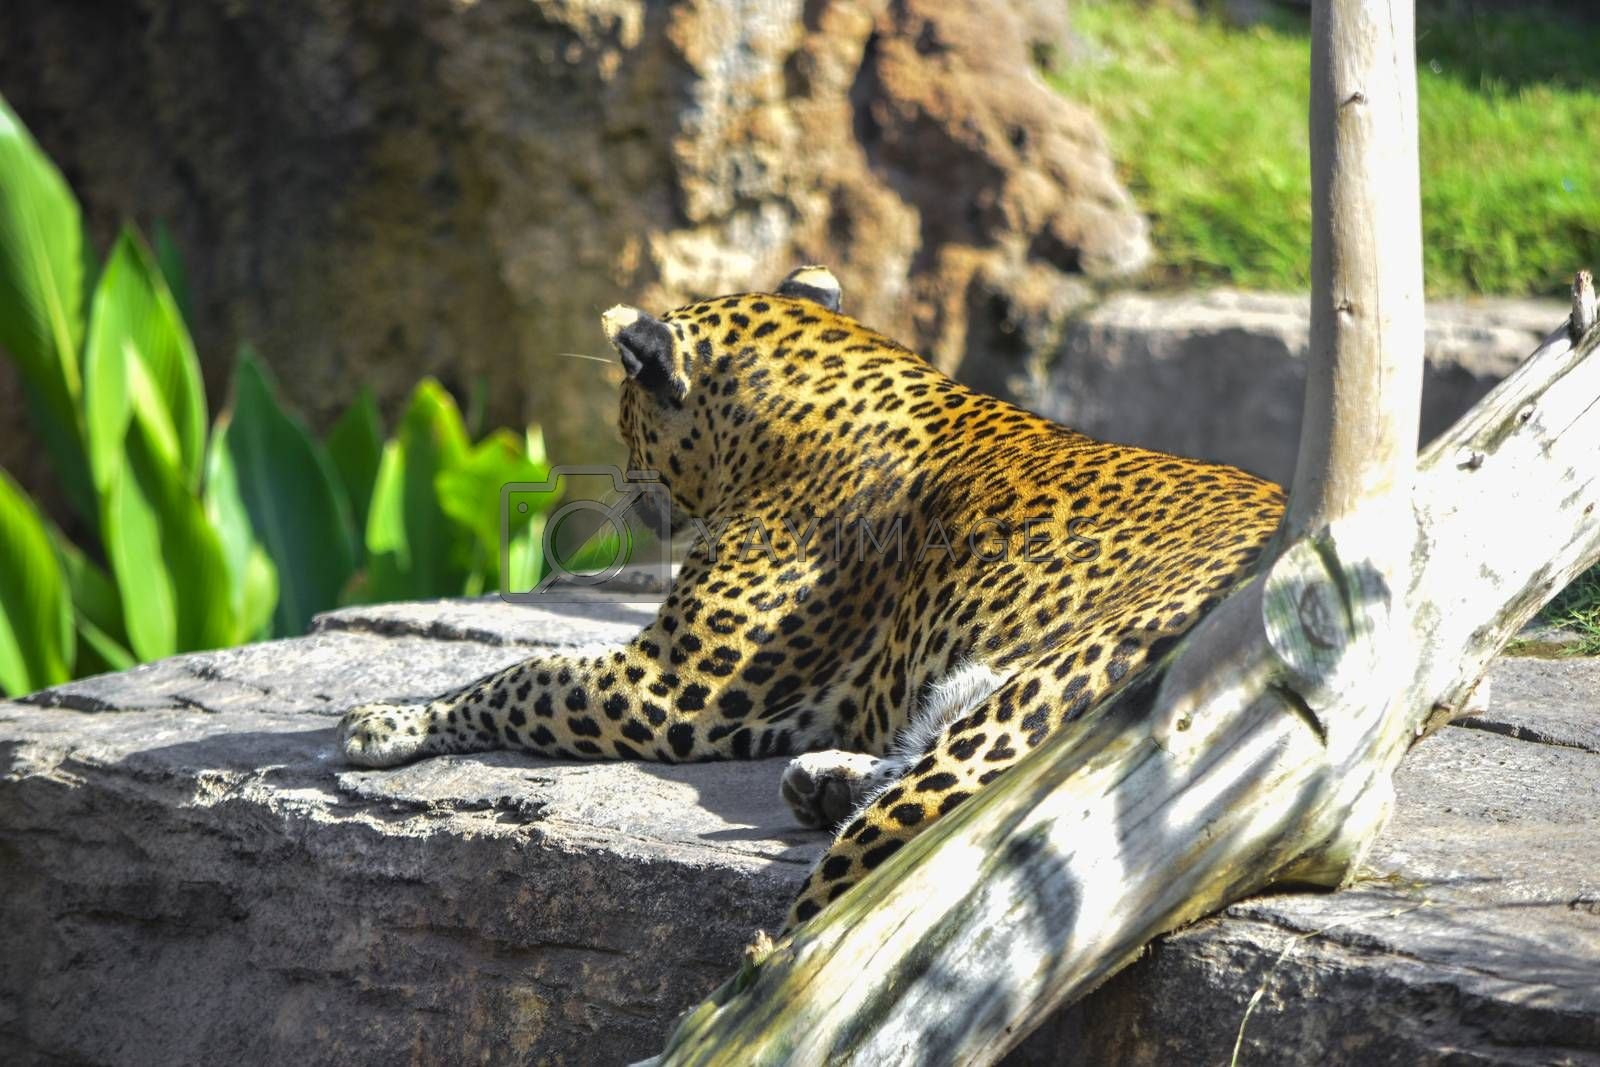 leopard watching from a rock by Prf_photo